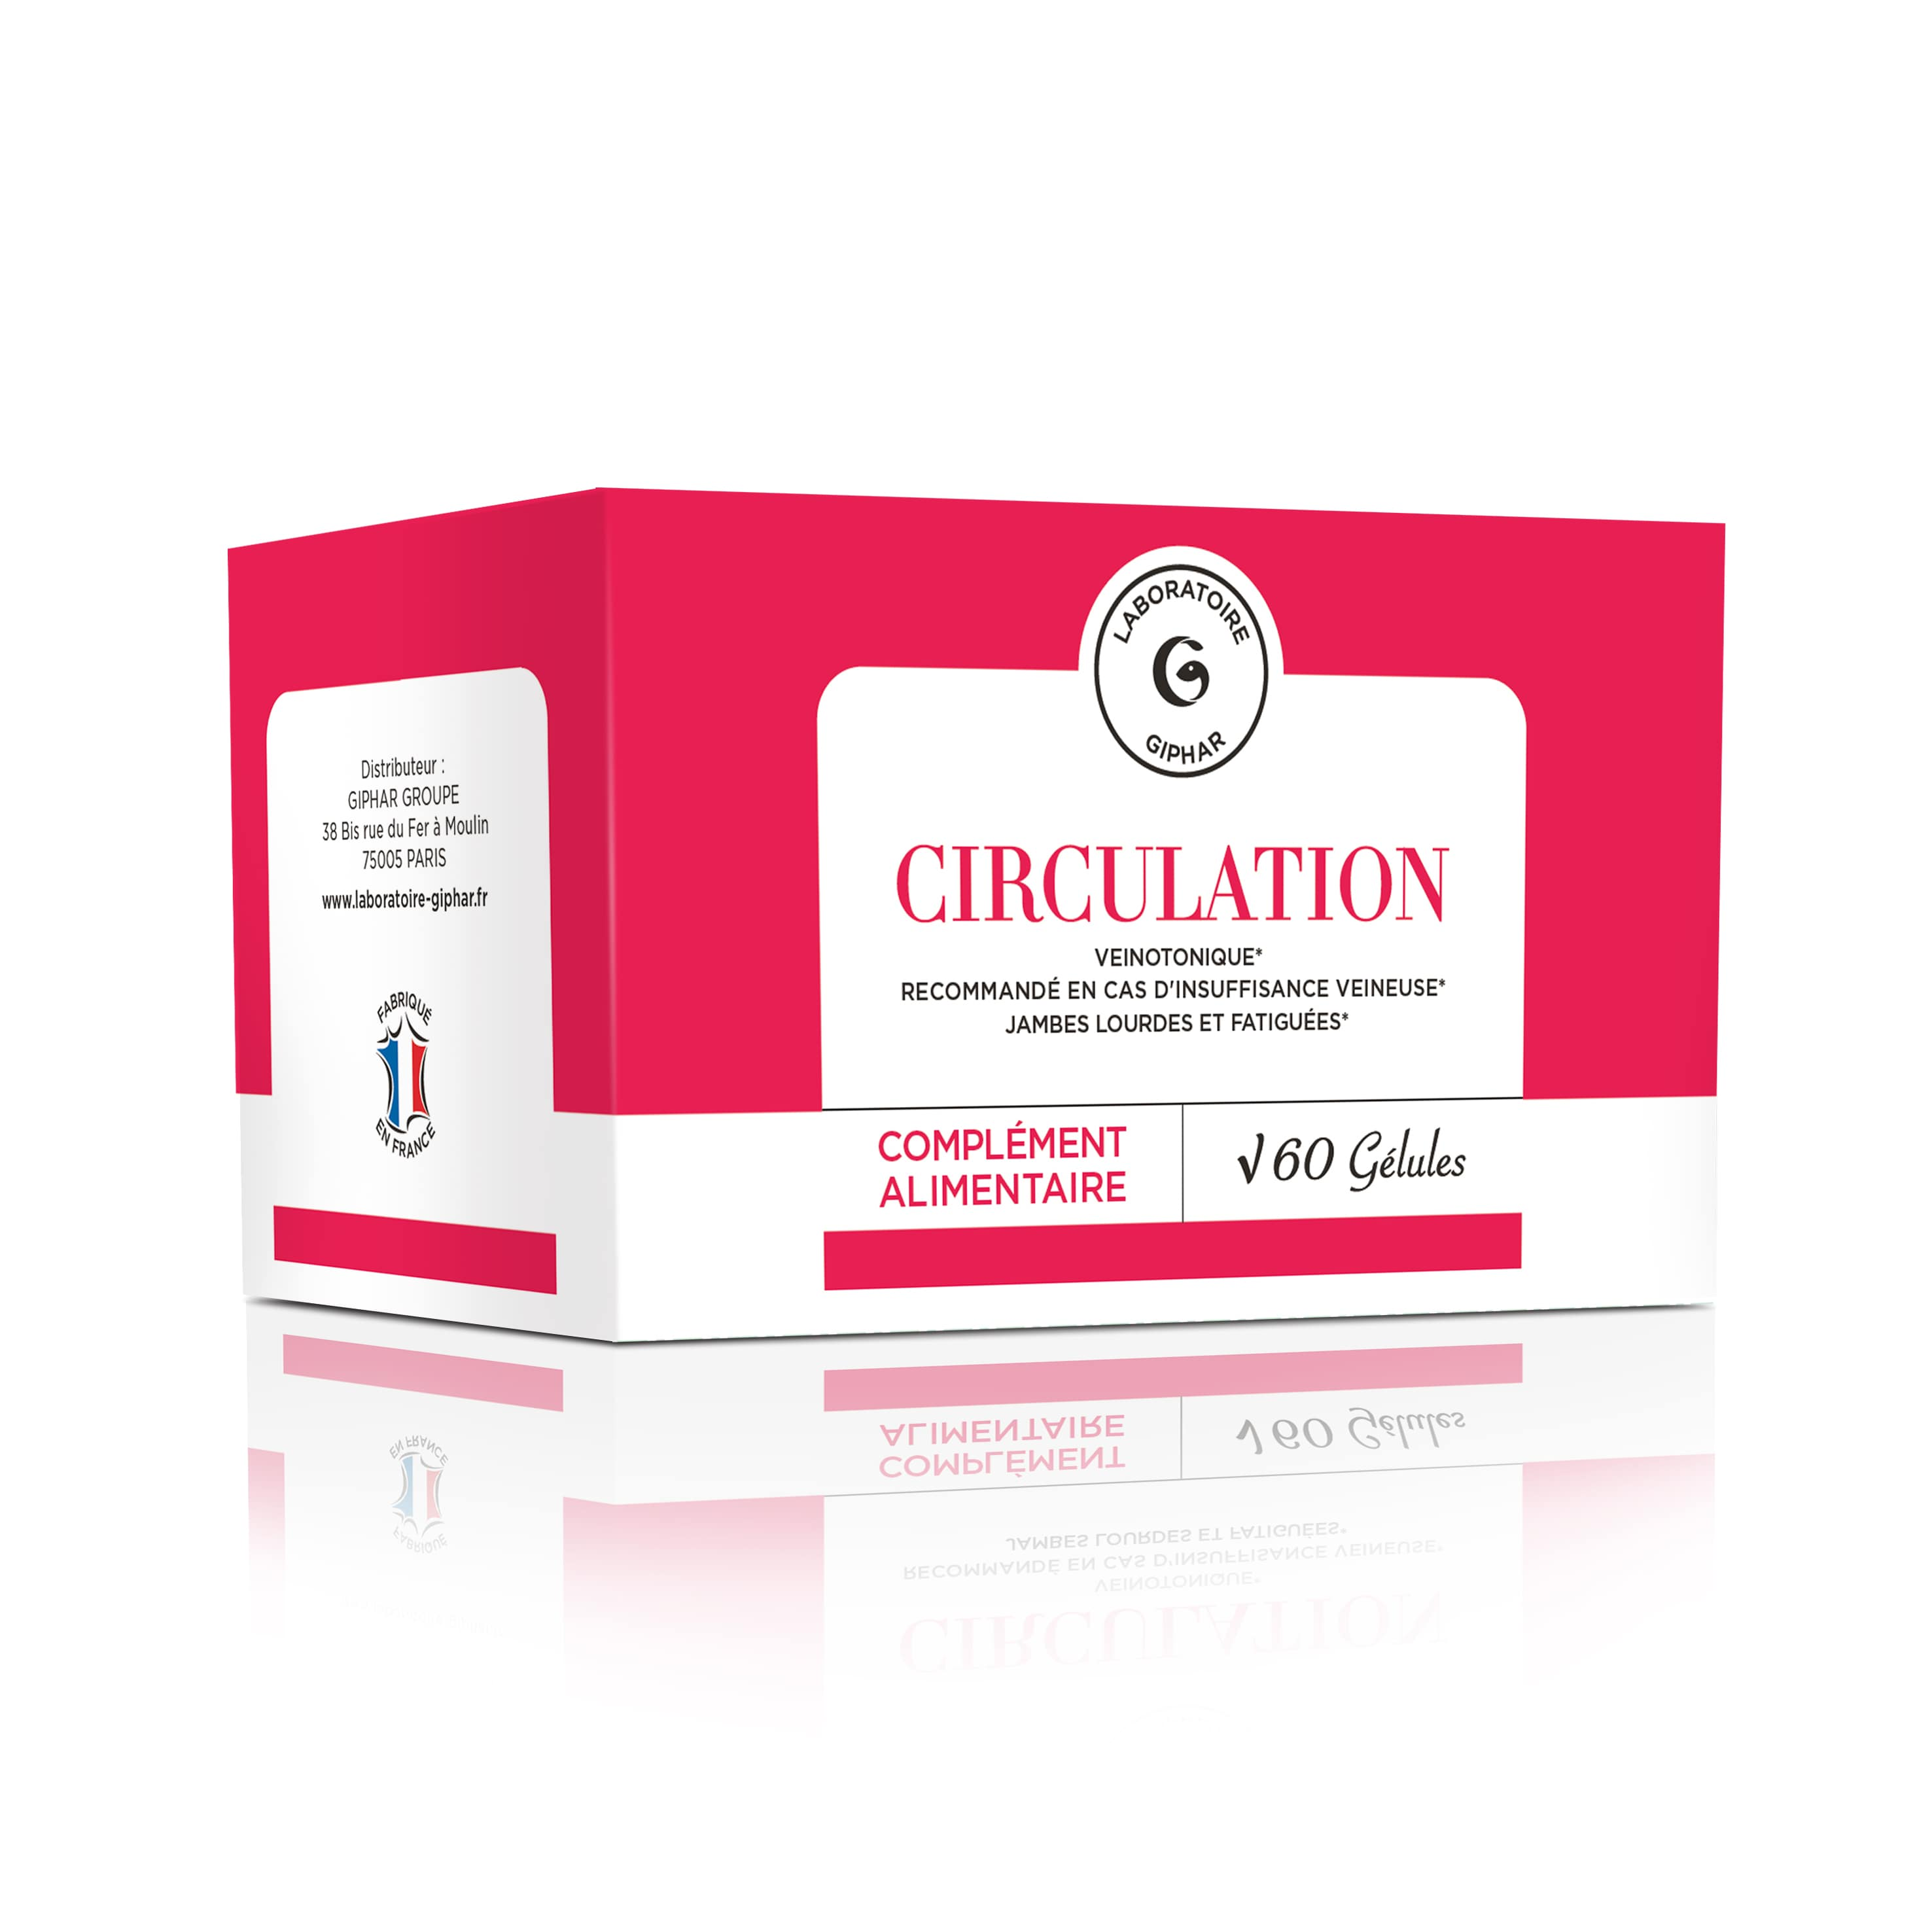 complement alimentaire circulation packaging